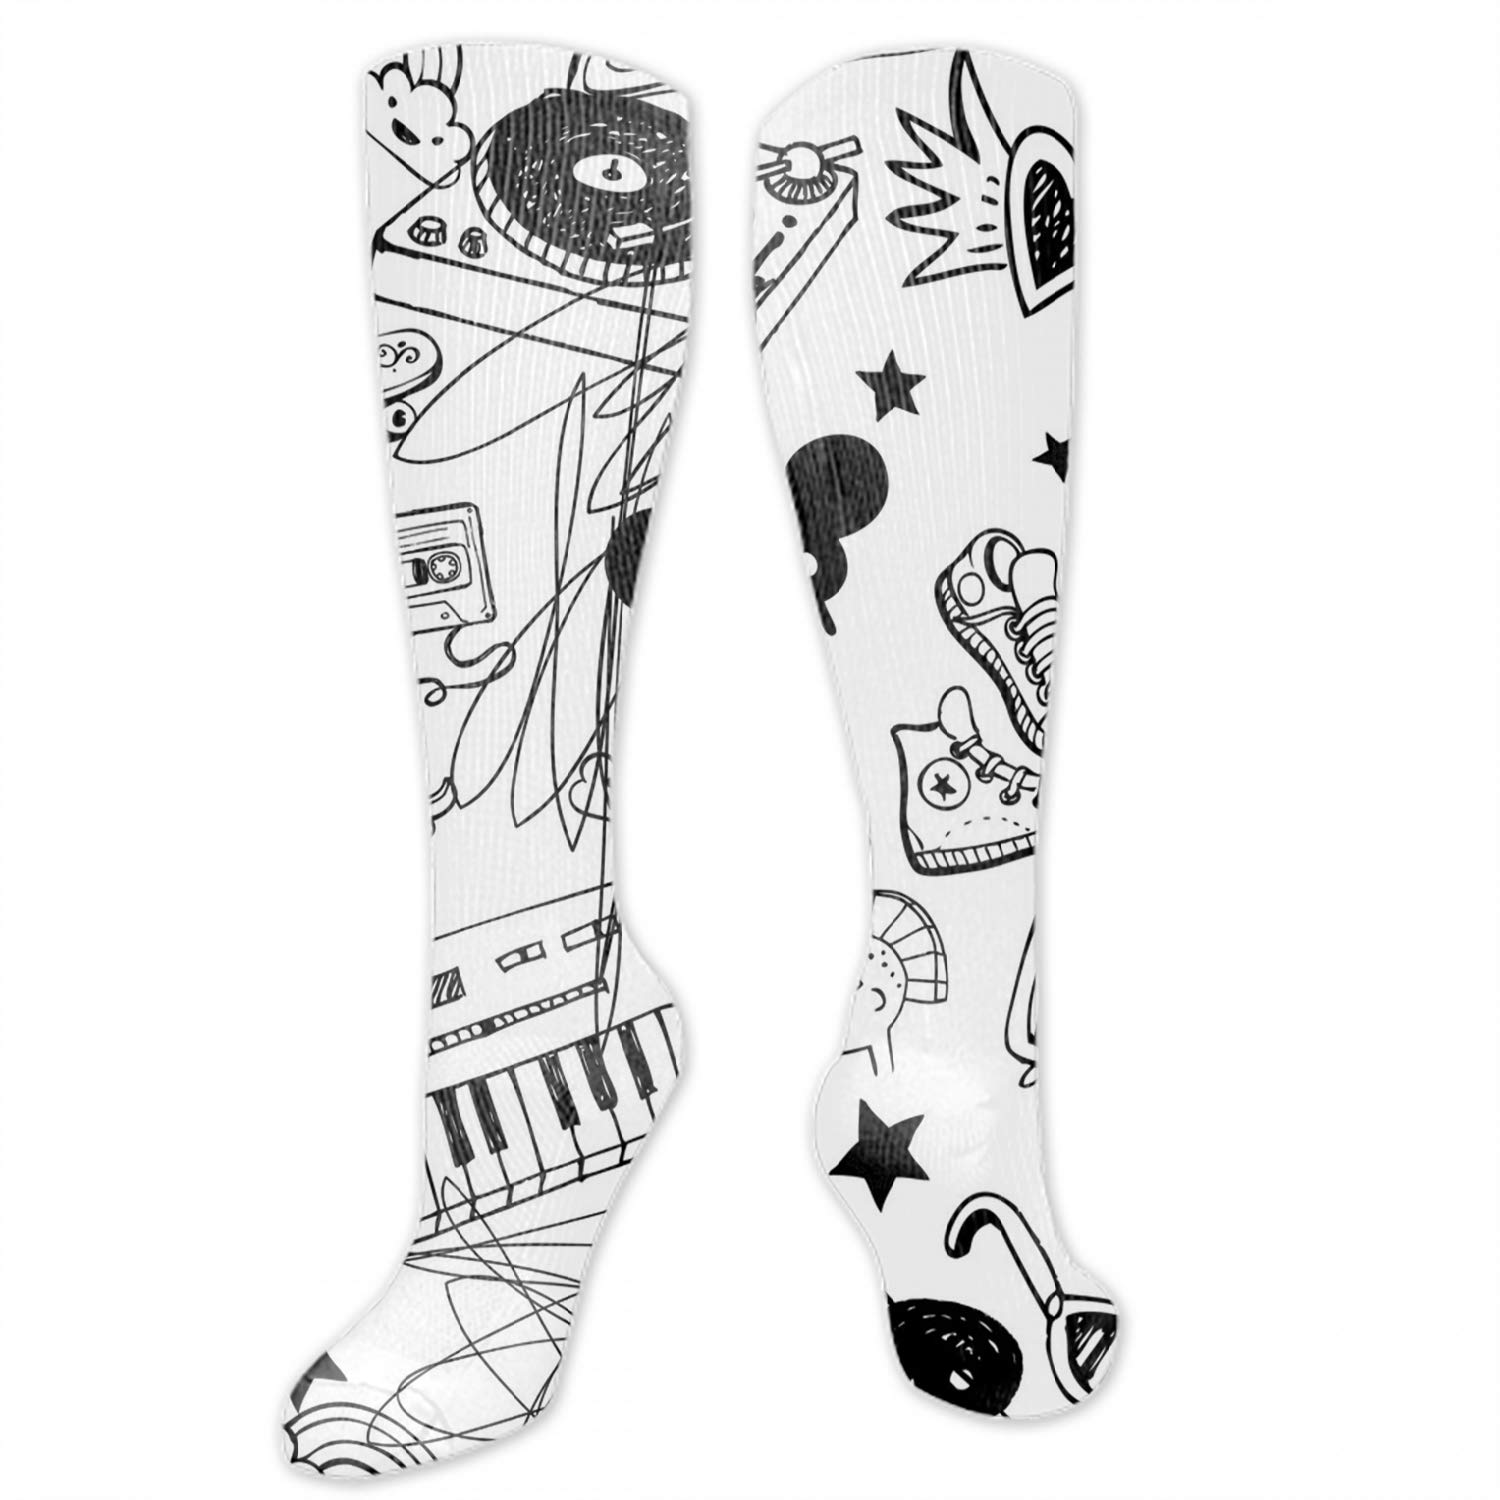 Unisex Art Patterned Casual Crew Socks Musical Note Icon Good for Gift Idea